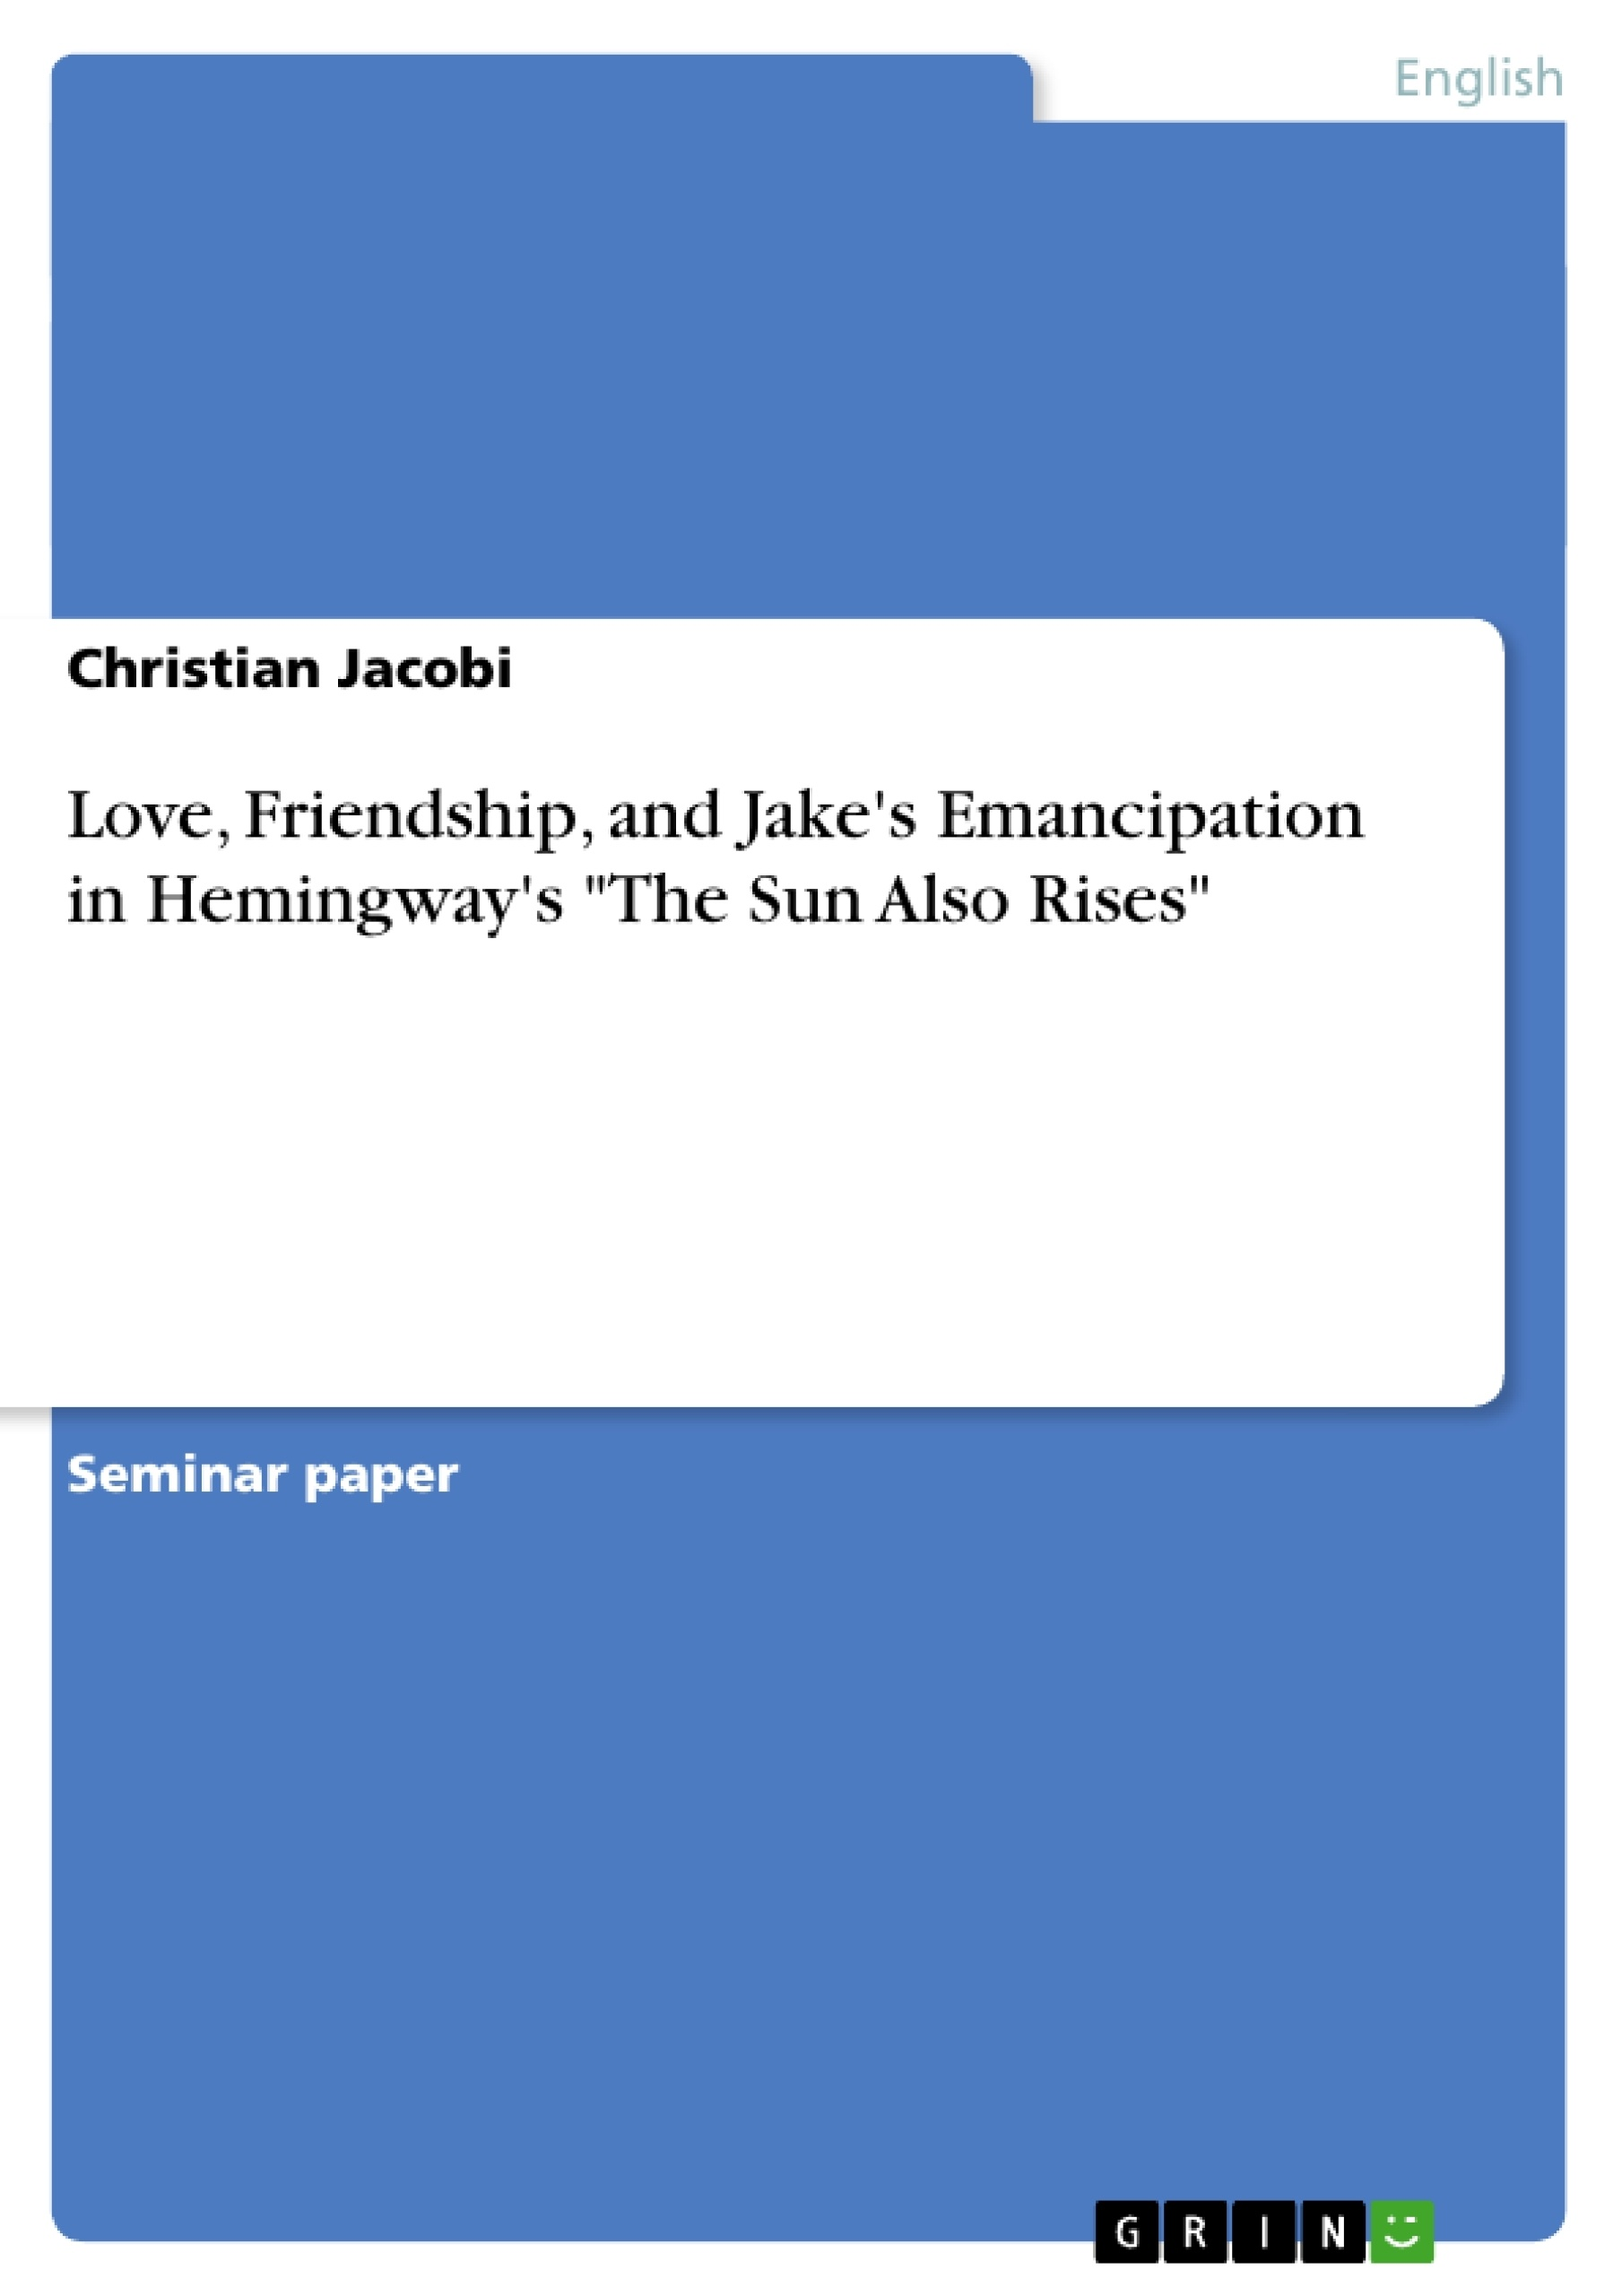 """Title: Love, Friendship, and Jake's Emancipation in Hemingway's """"The Sun Also Rises"""""""